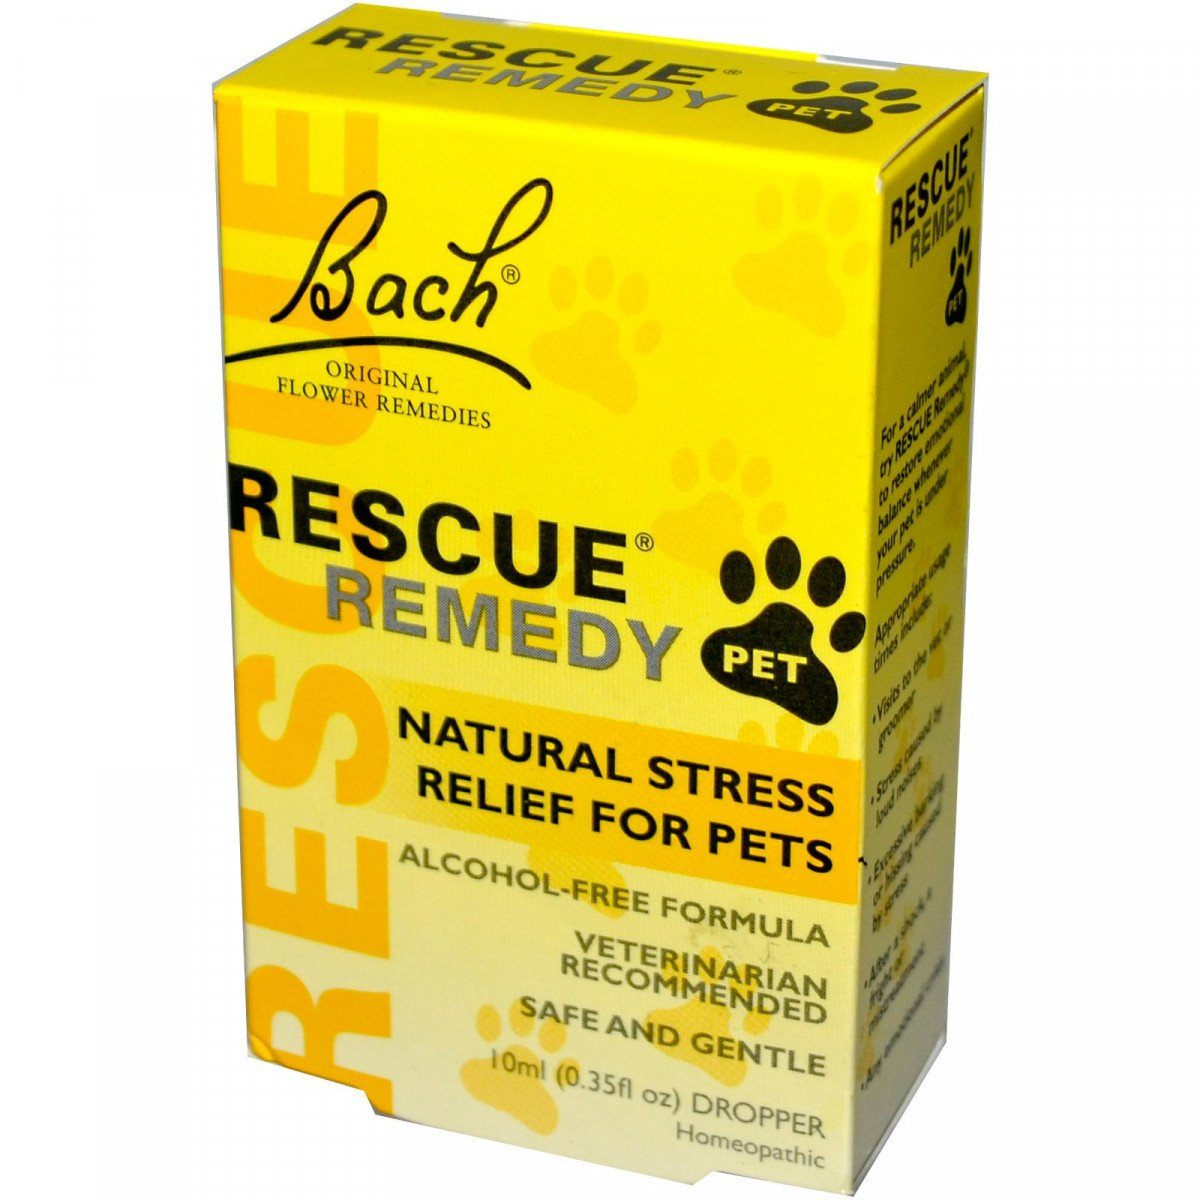 Supplements & Vitamins - Bach Original Flower Remedies - Rescue Pet, 10 Ml